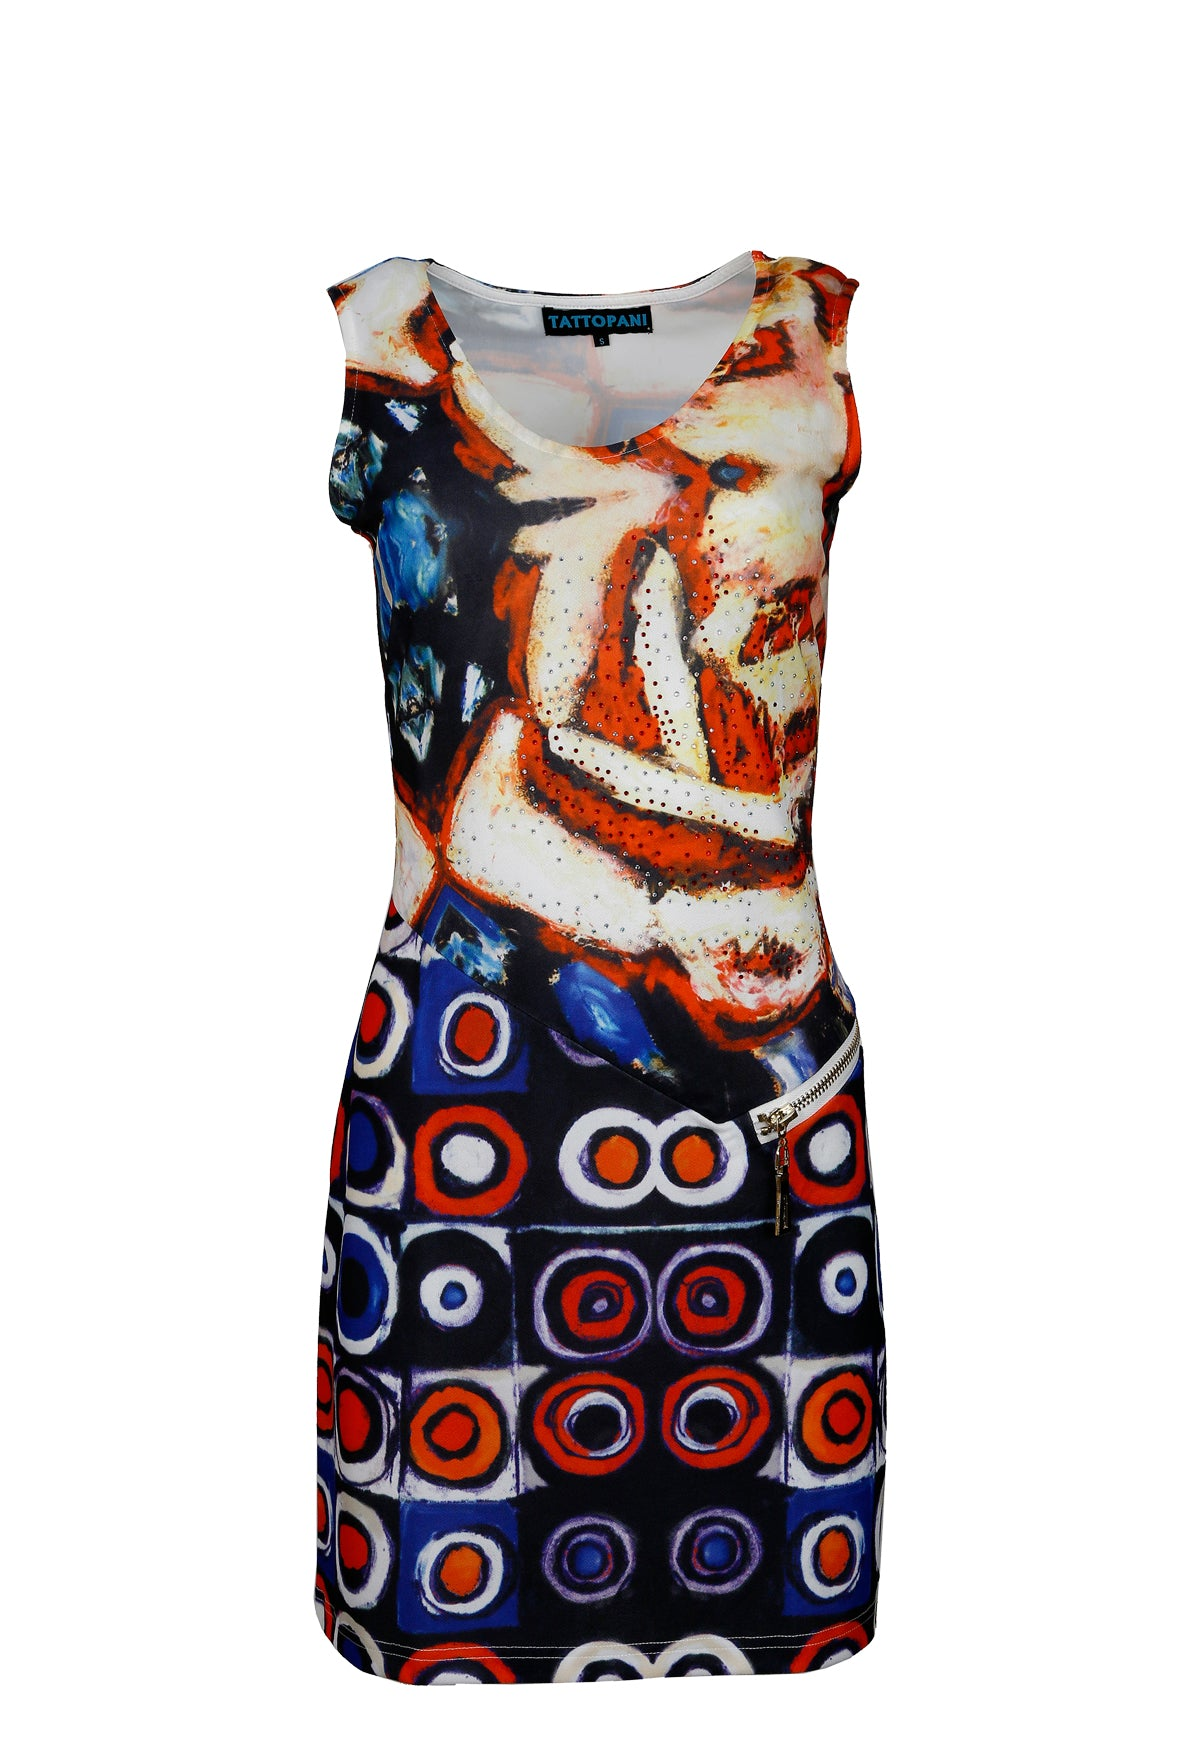 Ladies sleeveless dress with multicolored pattern print & rhinestones - Craze Trade Limited